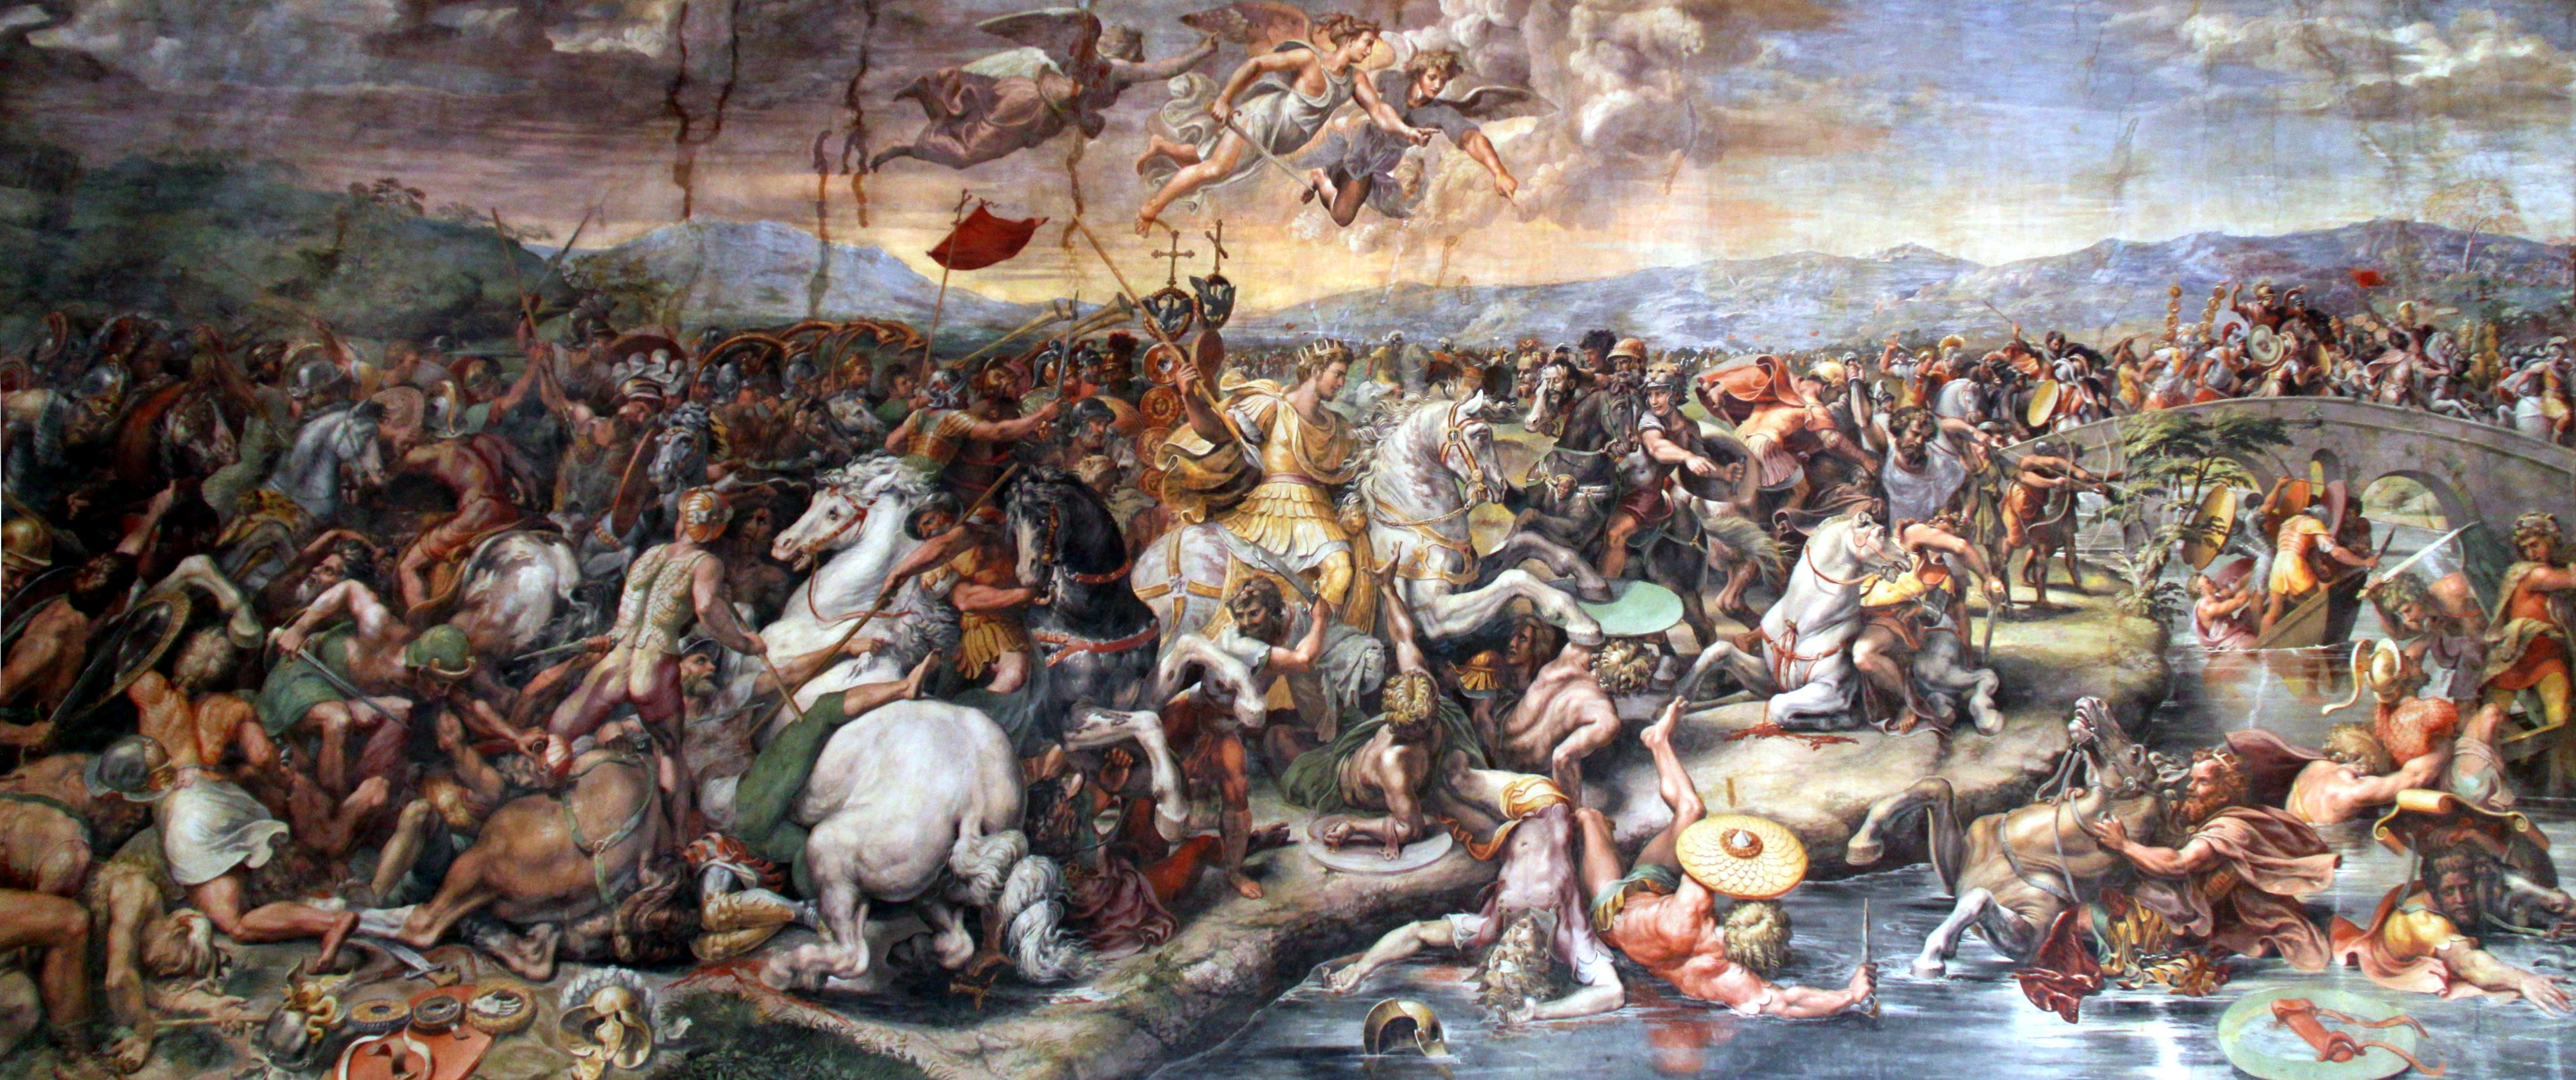 Top 14 Decisive Ancient Battles in the History